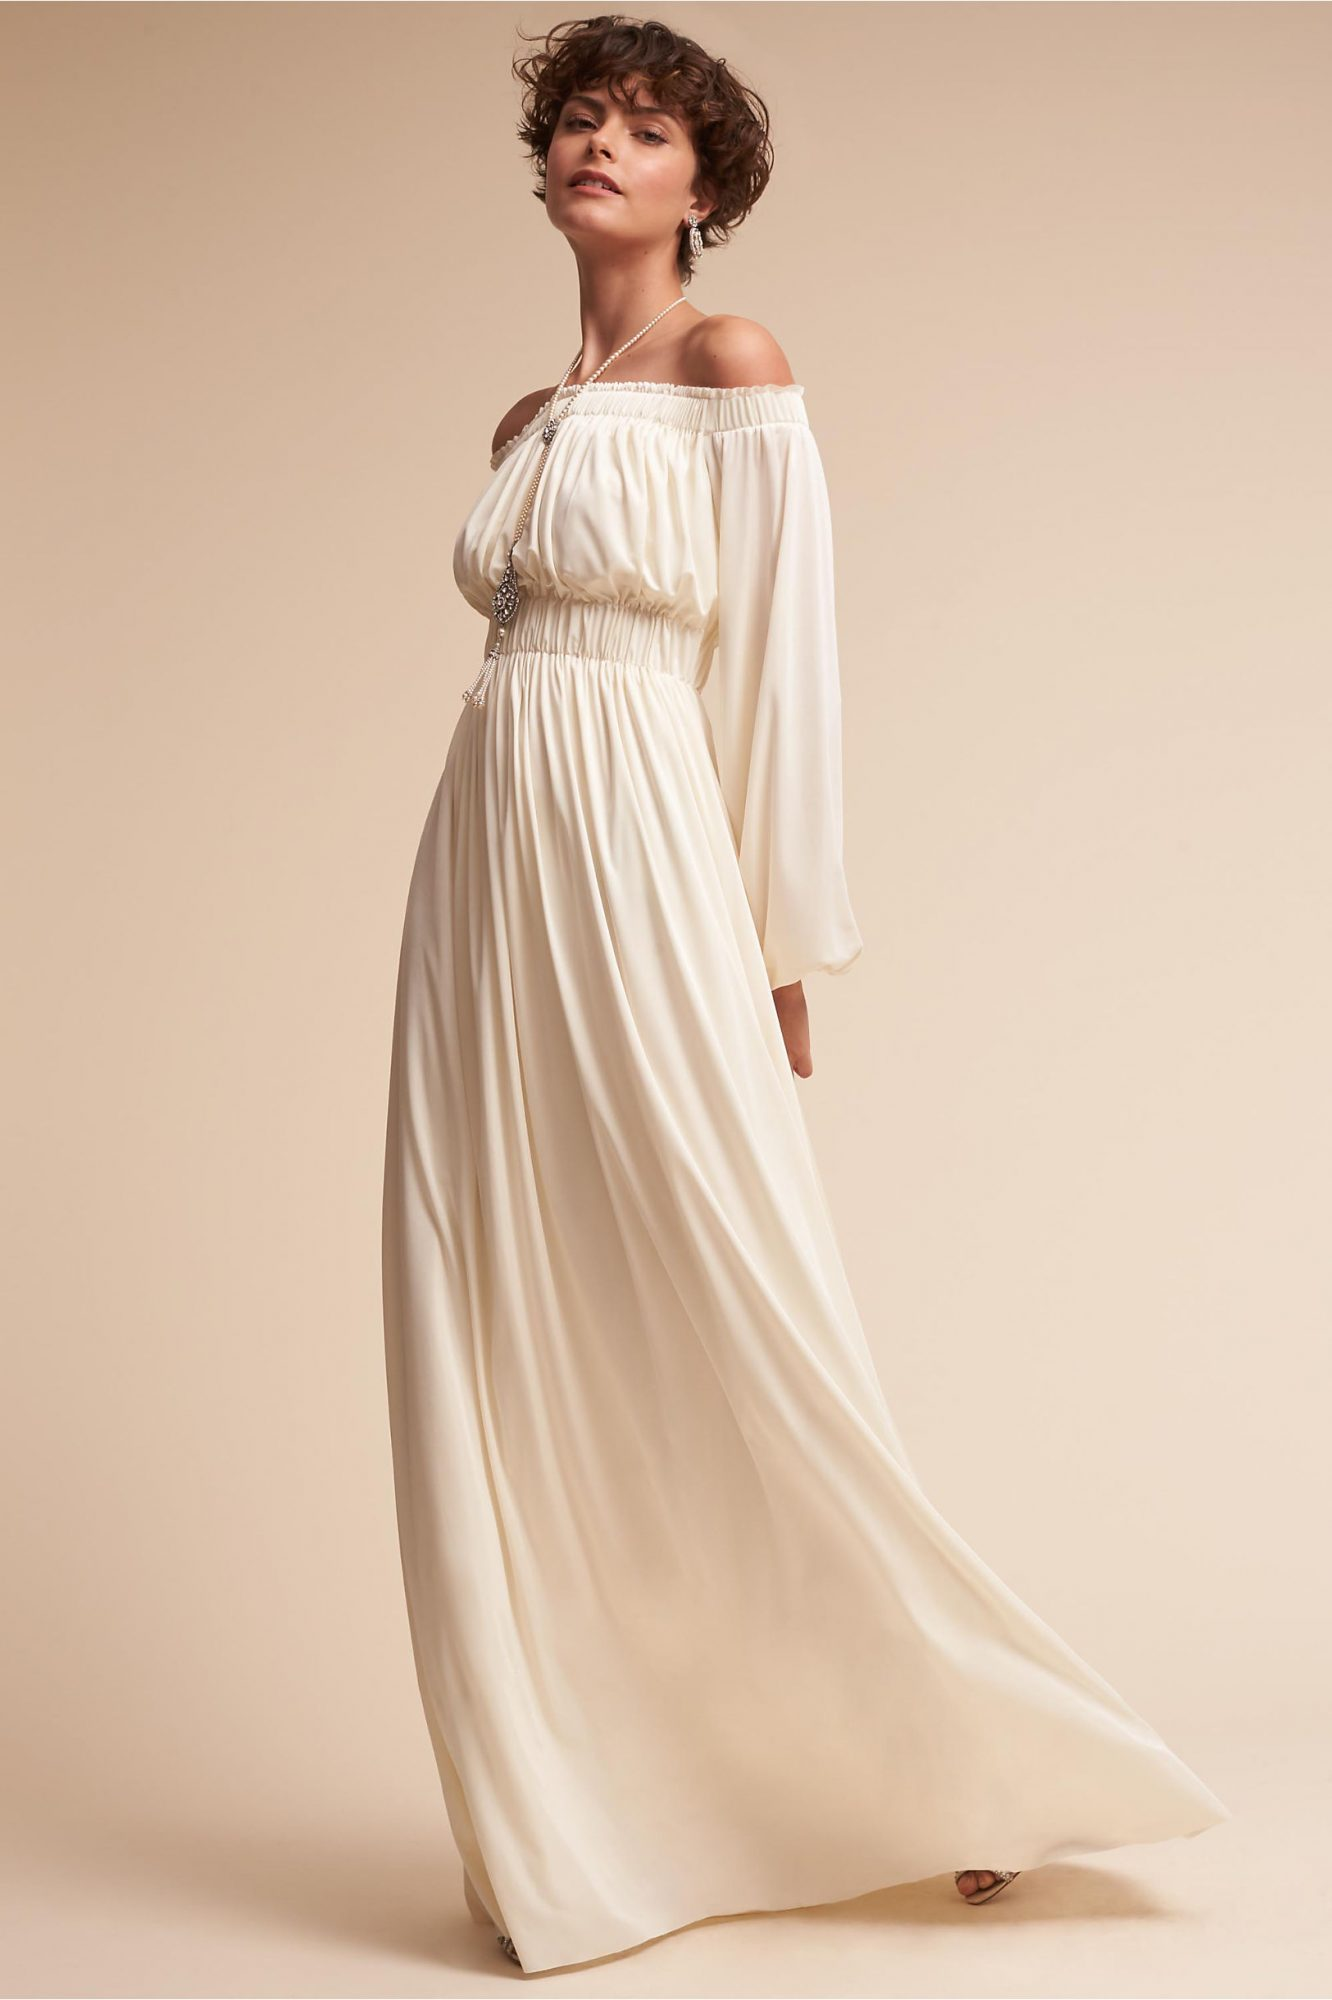 20s inspired wedding gowns for the bride who's just plain groovy ...